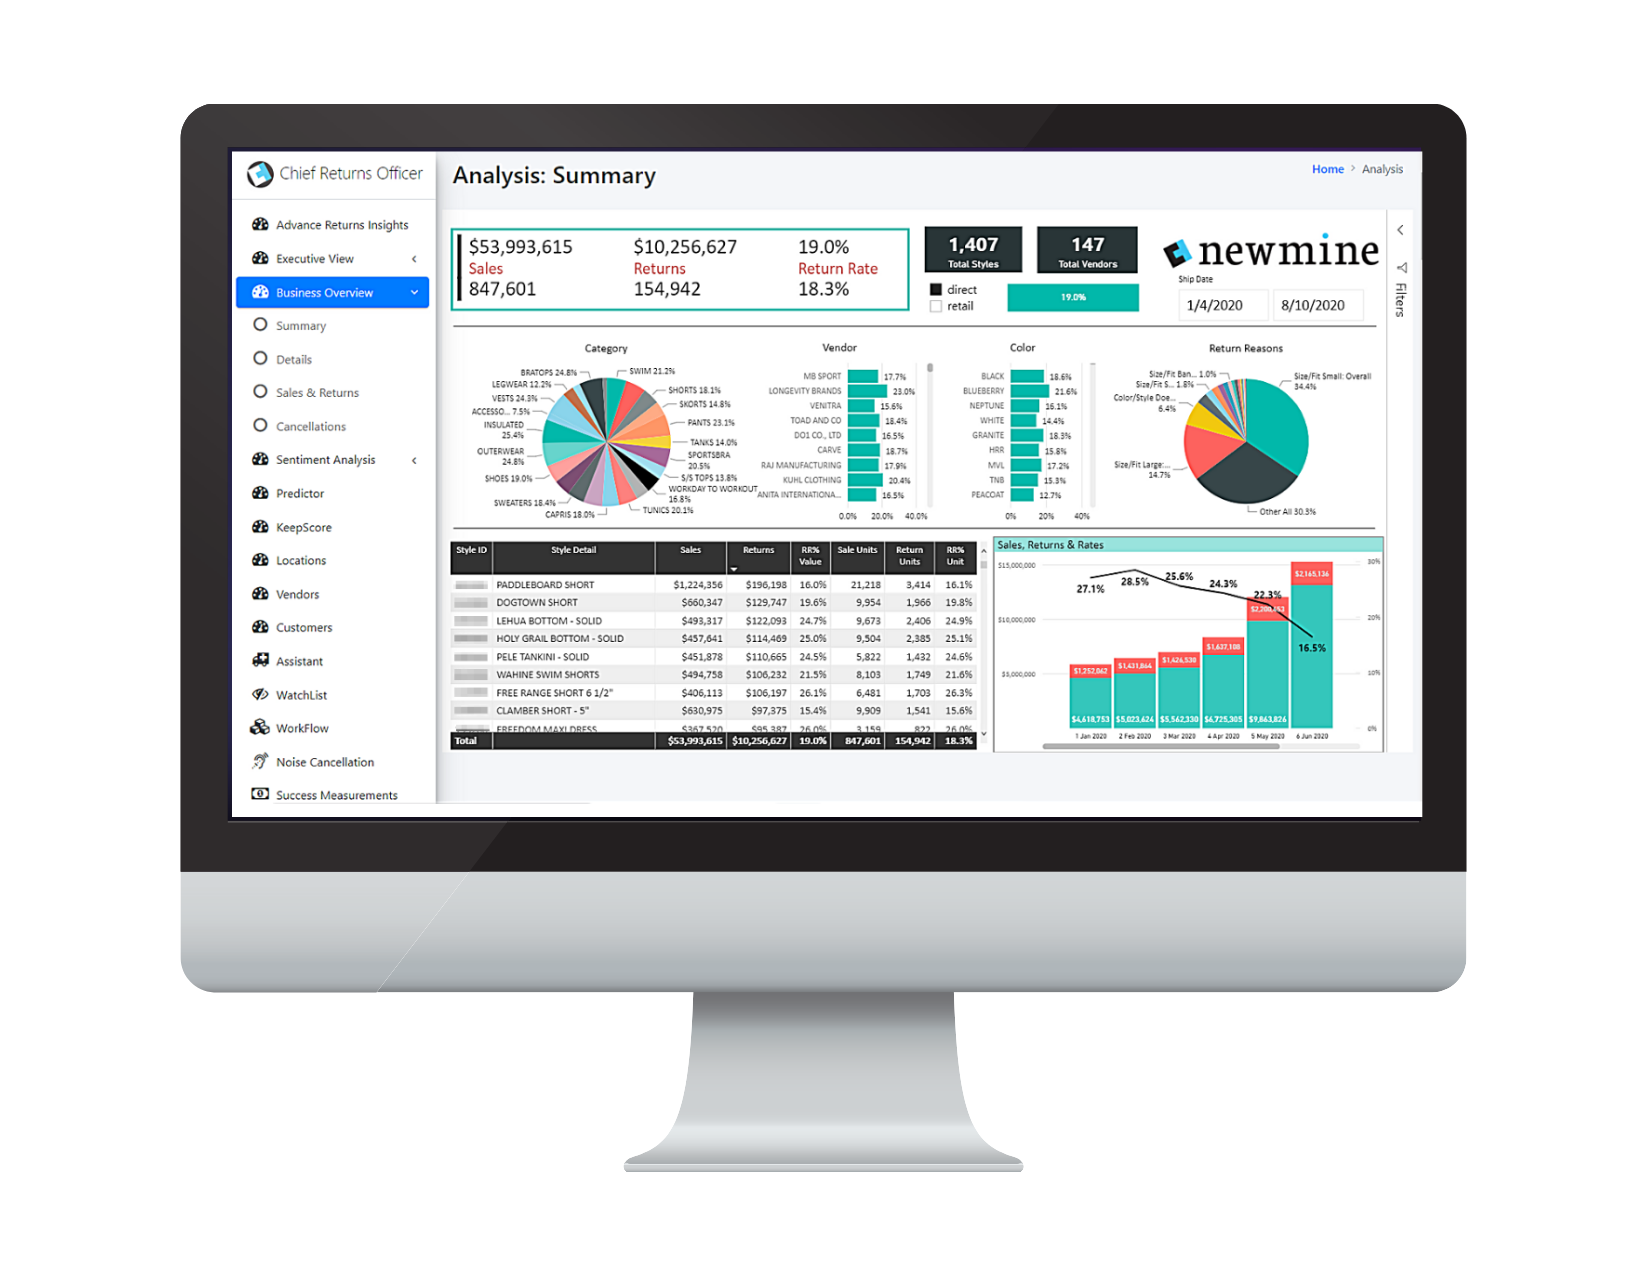 Chief Returns Officer Dashboard in Monitor